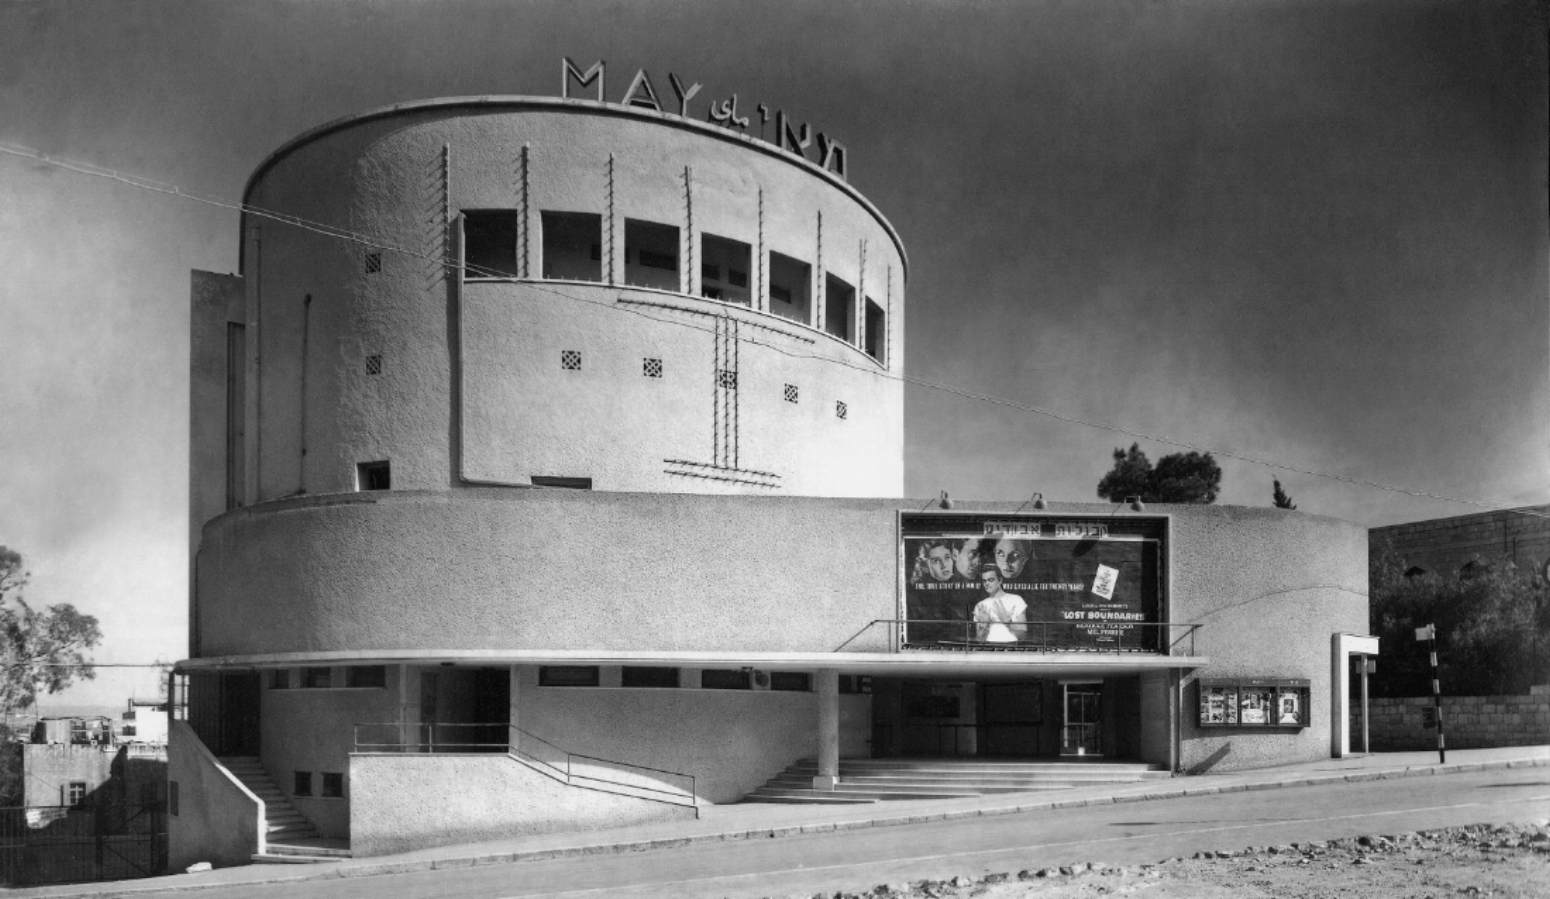 The 1930 May Cinema in Tel Aviv was designed by Yehuda Lilienfeld. Photo from the Kalter Collection